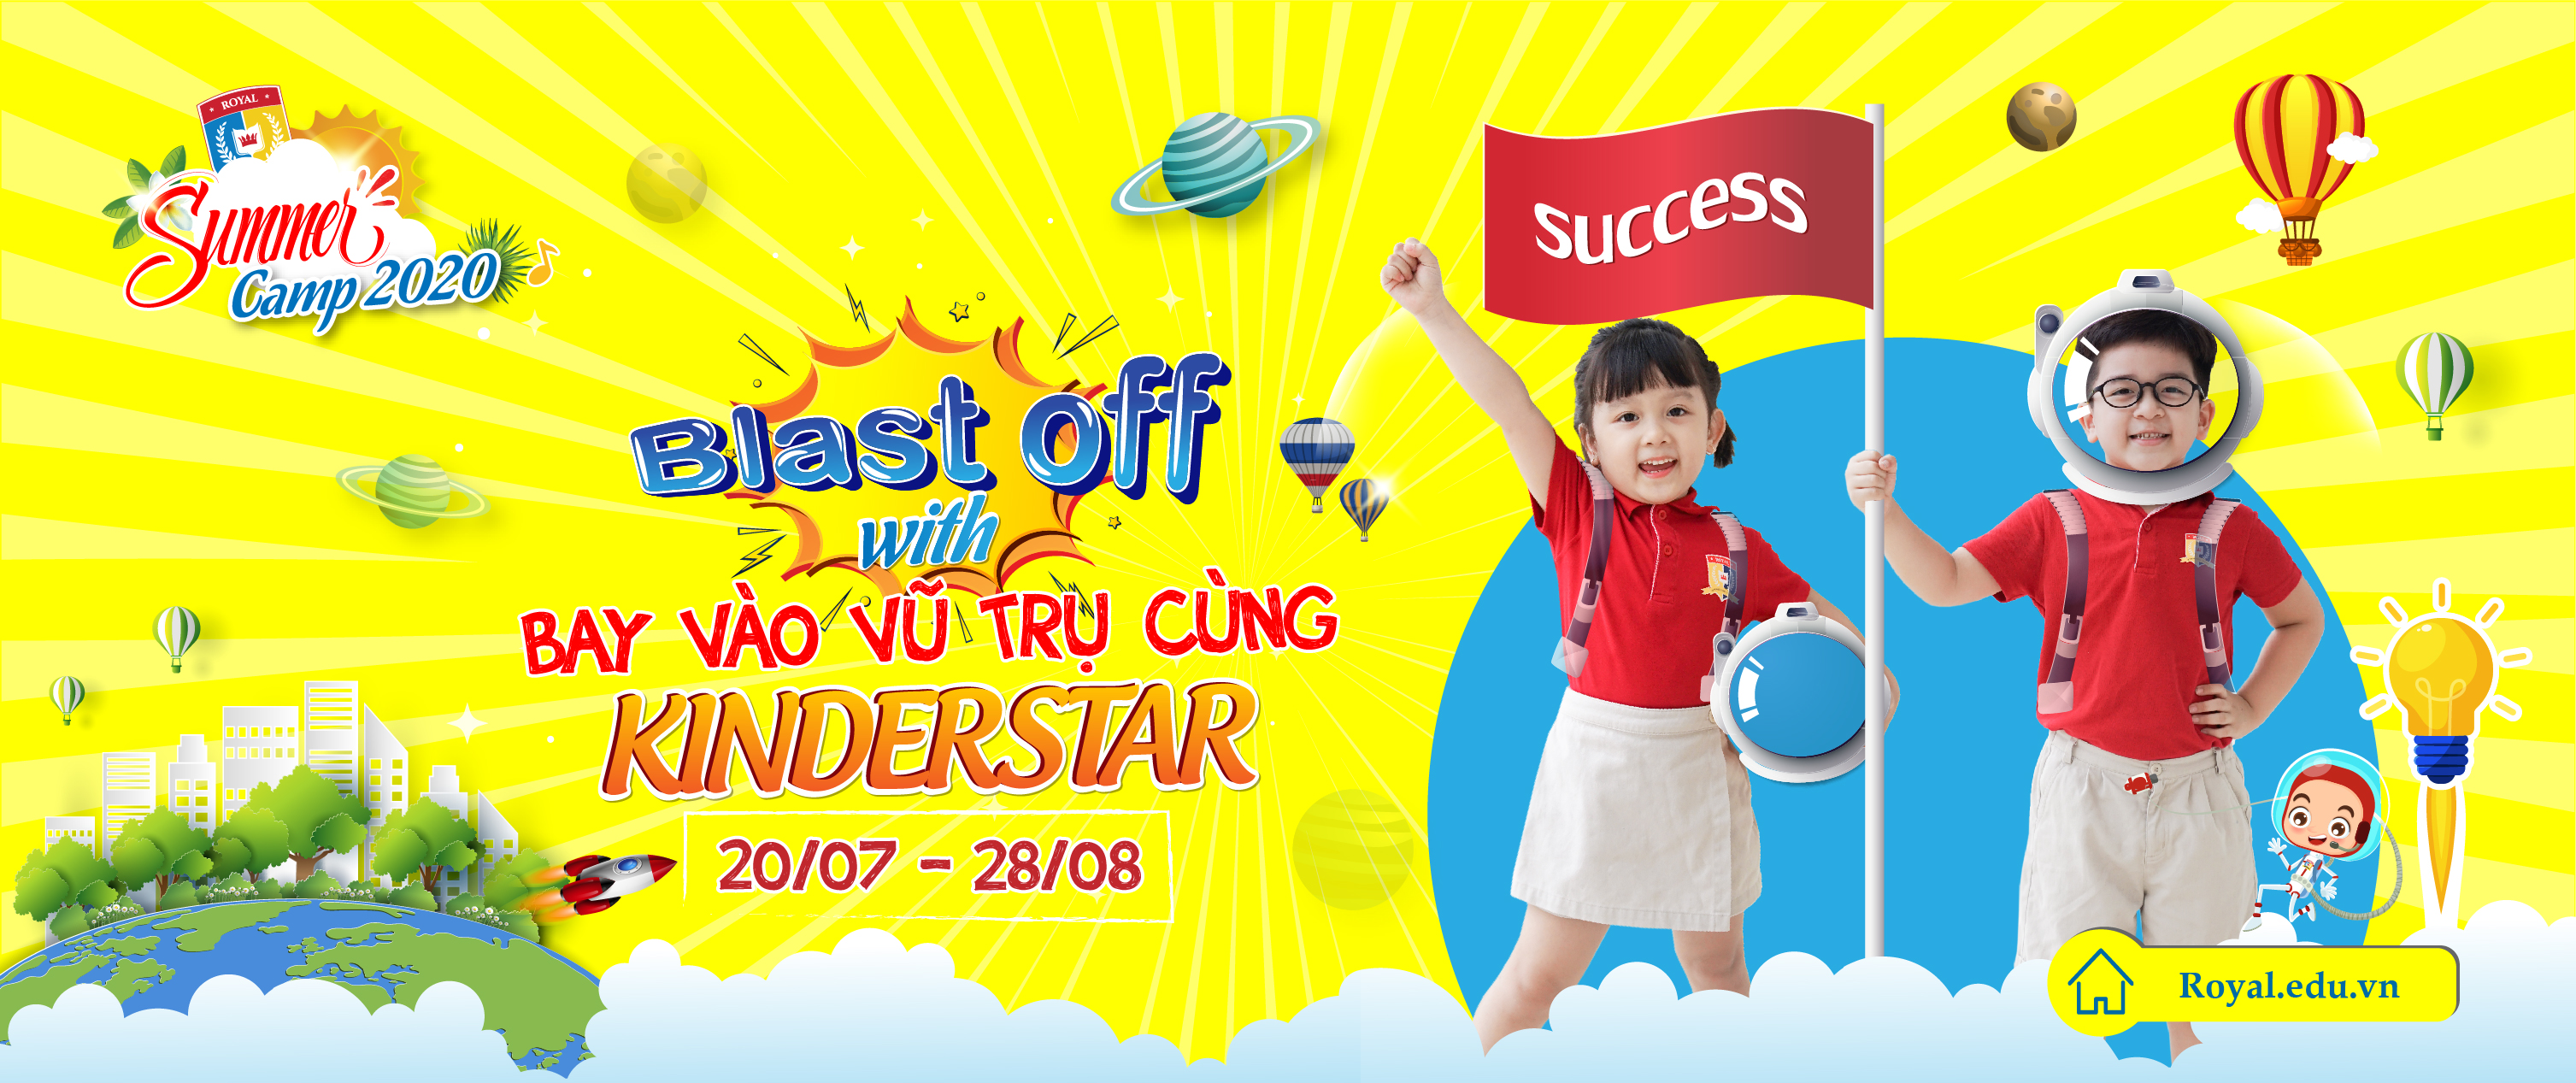 Summer Camp 2020 - Blast off with KINDERSTAR